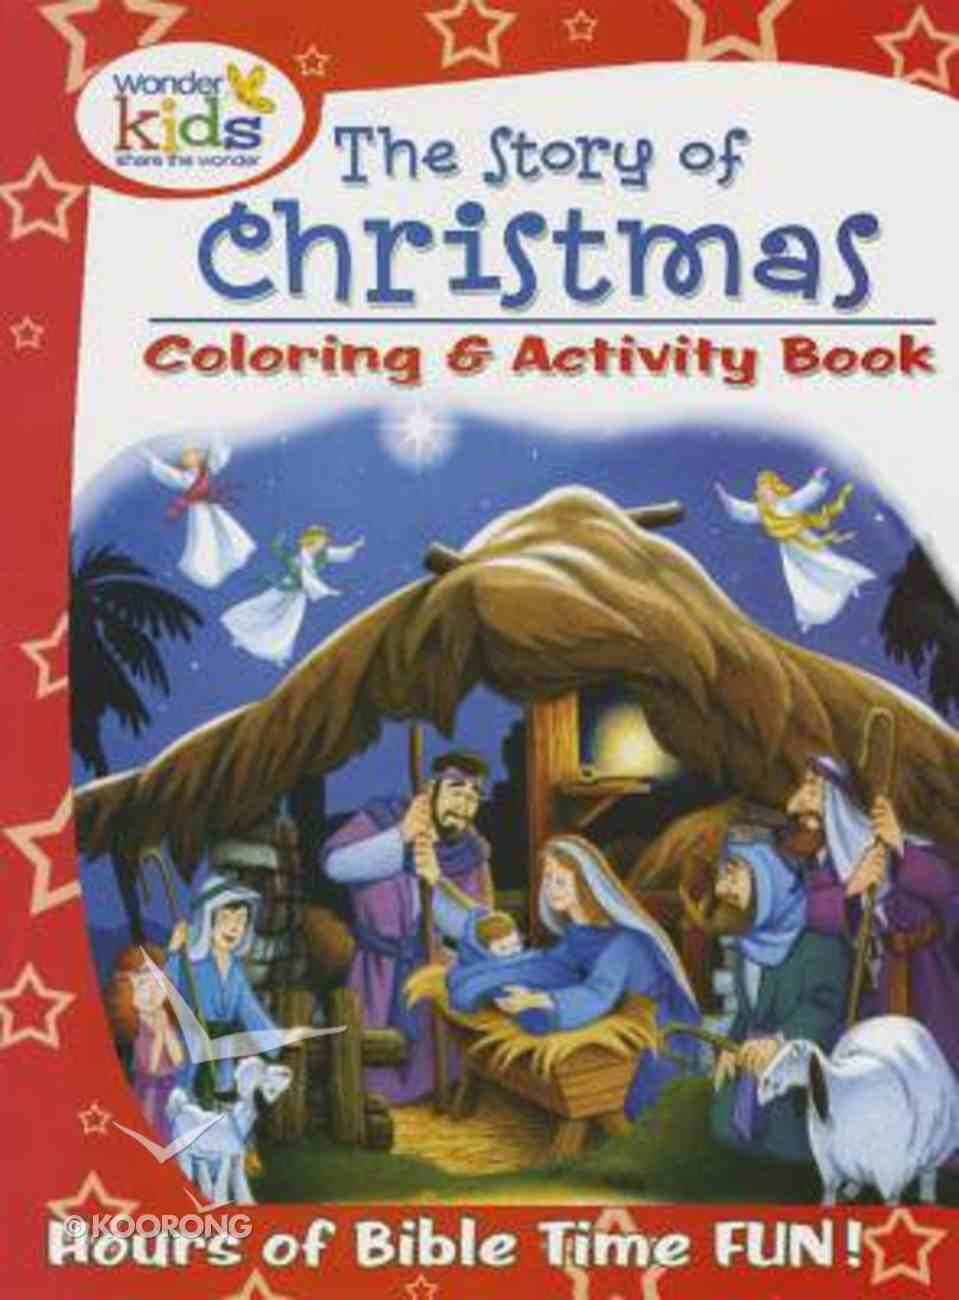 The Story of Christmas Colouring & Activity Book Paperback